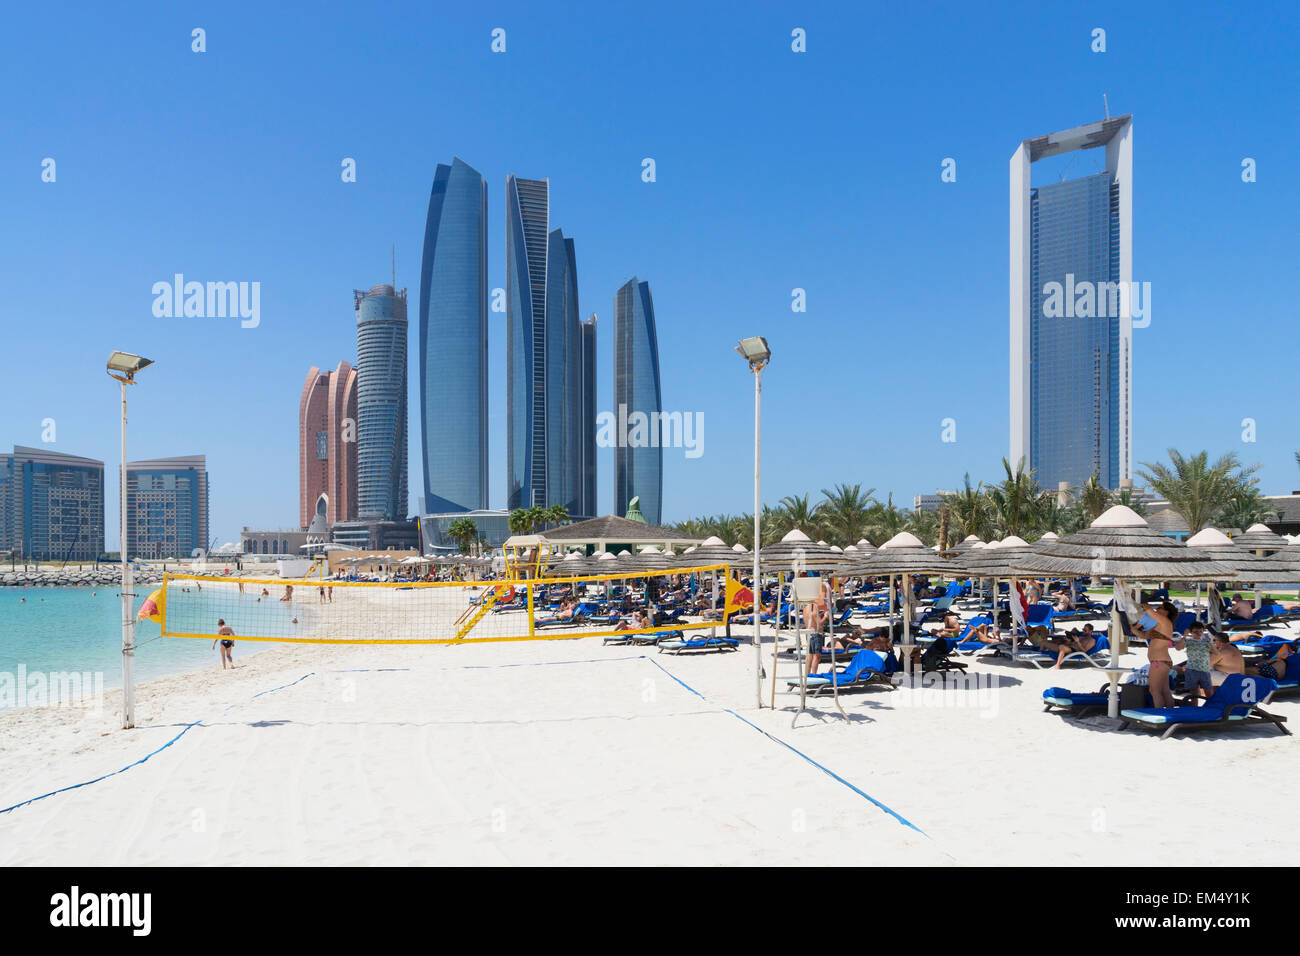 Skyline view of etihad towers from luxury hotel beach in abu dhabi in united arab emirates